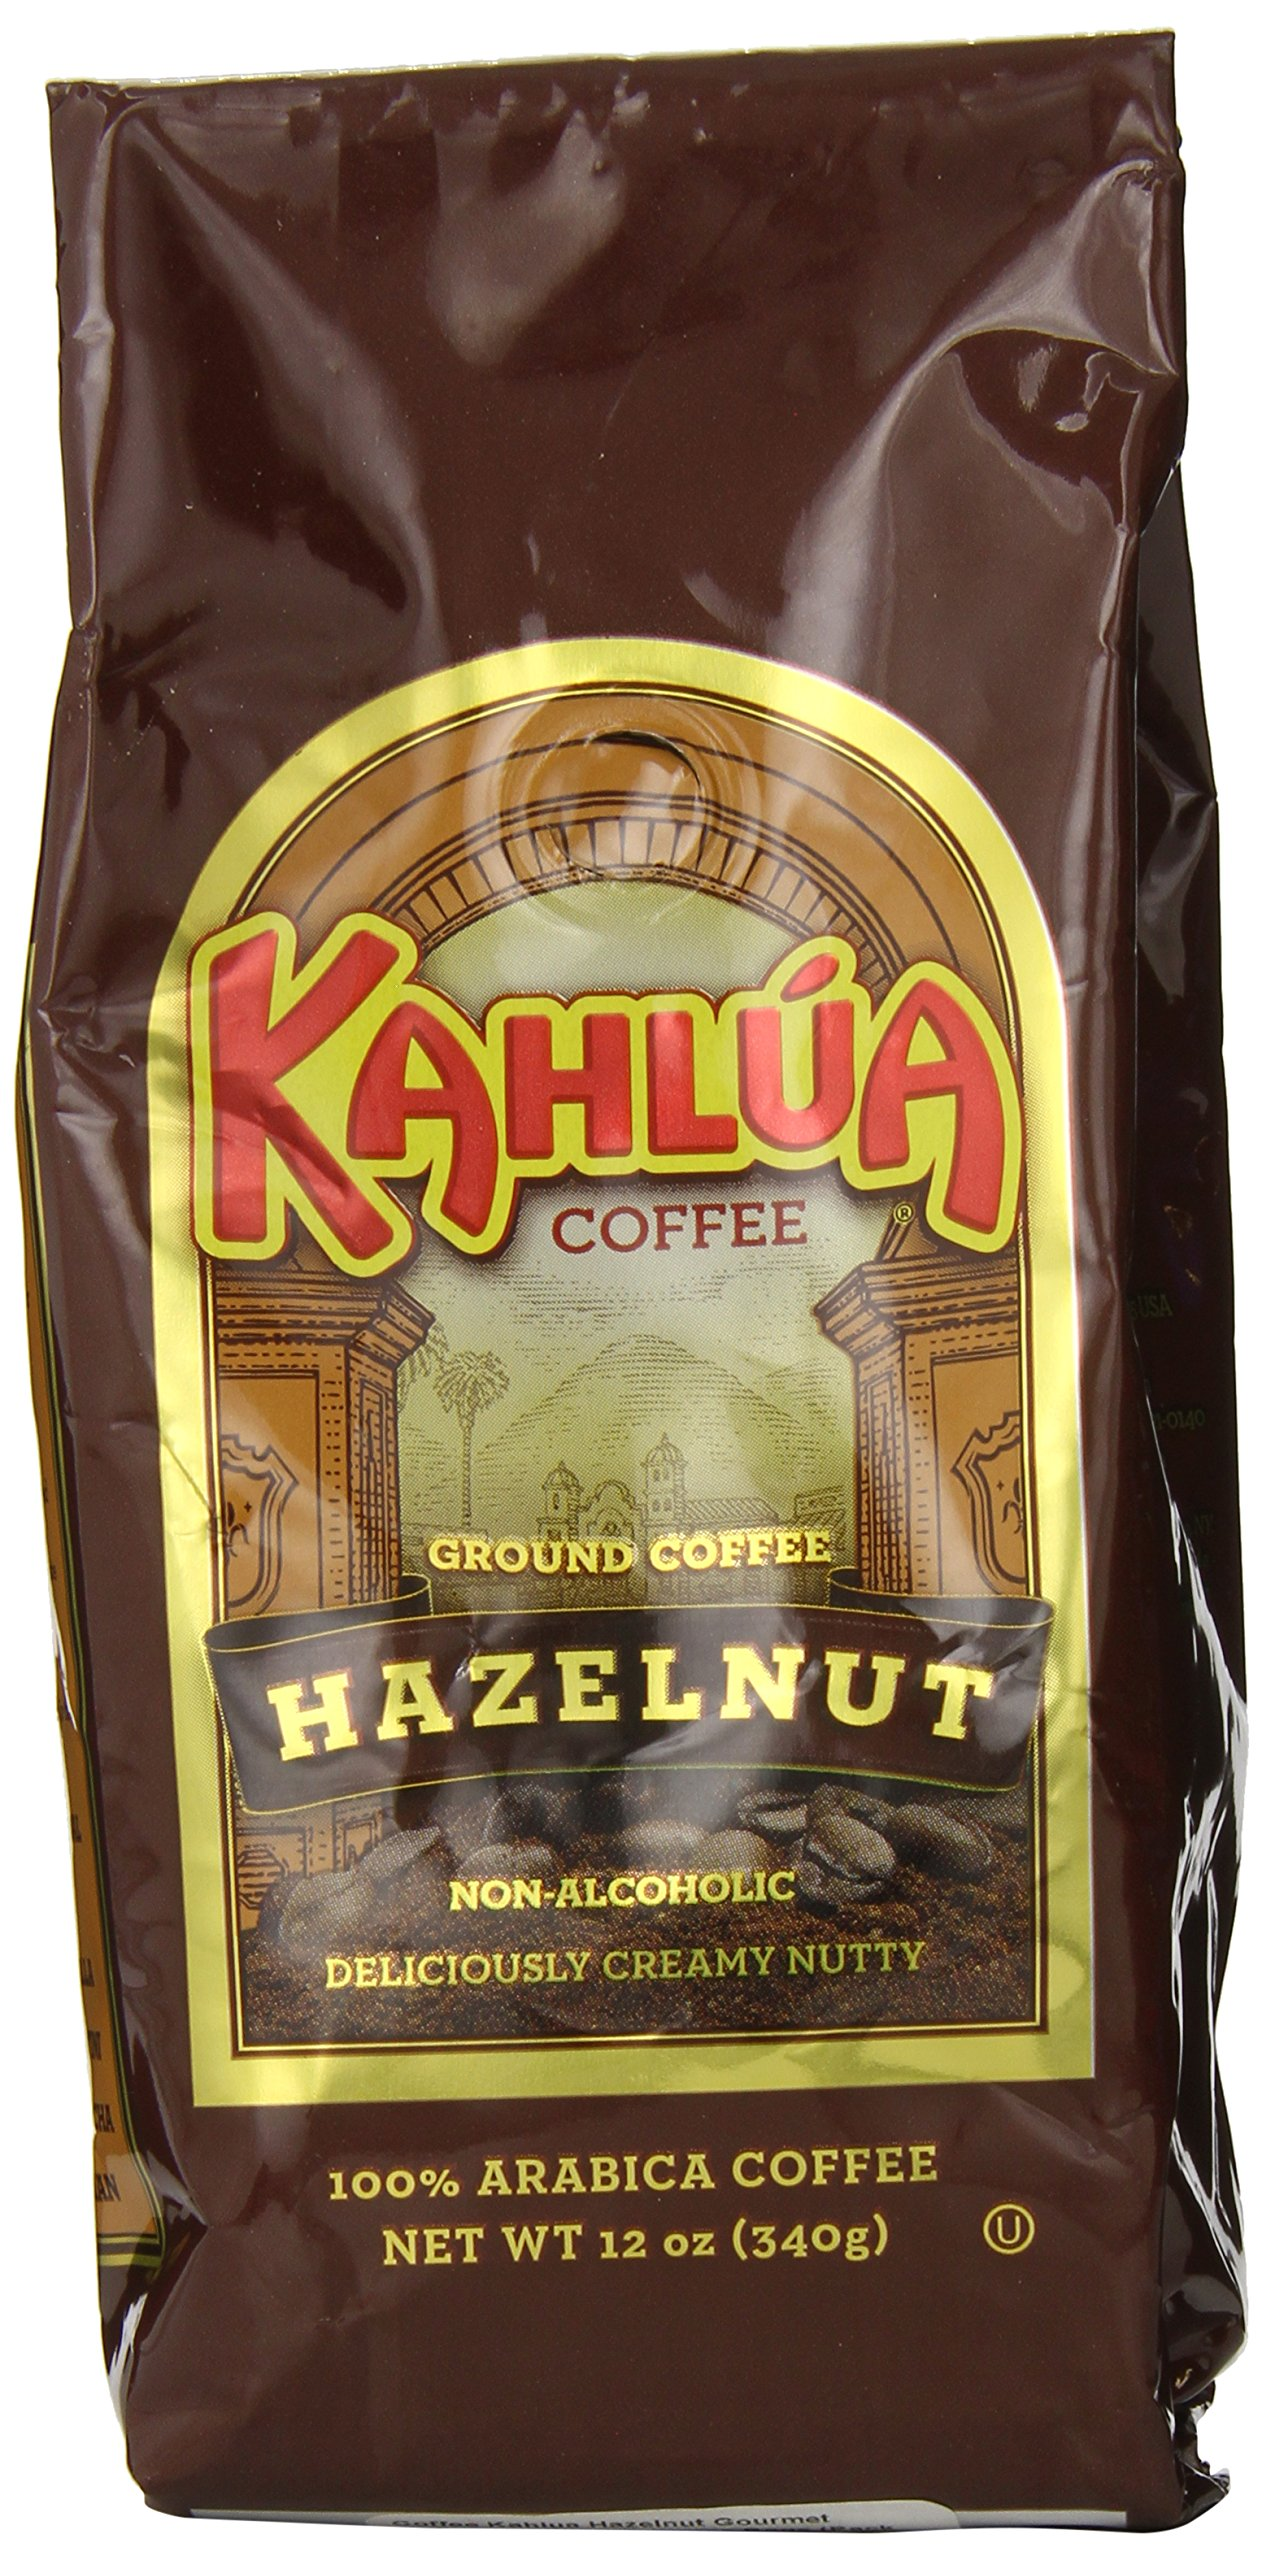 Coffee Kahlua Hazelnut Gourmet Ground Coffee, 12-Ounce Bags (Pack of 2)